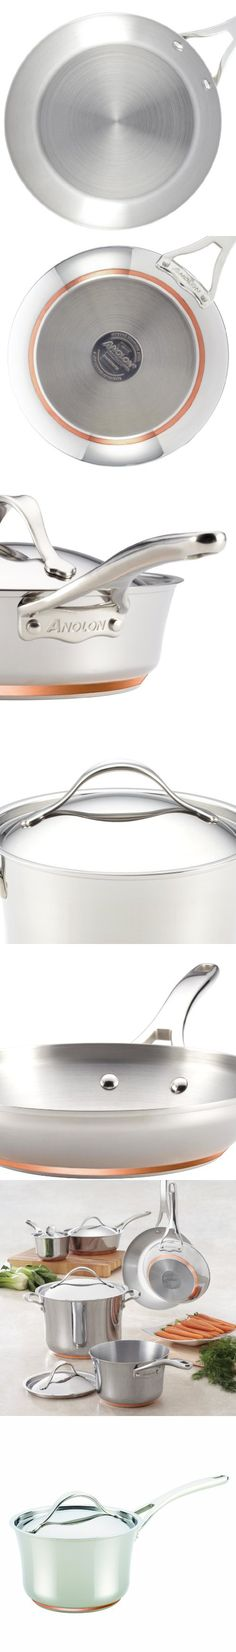 Anolon Nouvelle Copper Stainless Steel 3-1/2-Quart Covered Saucepan